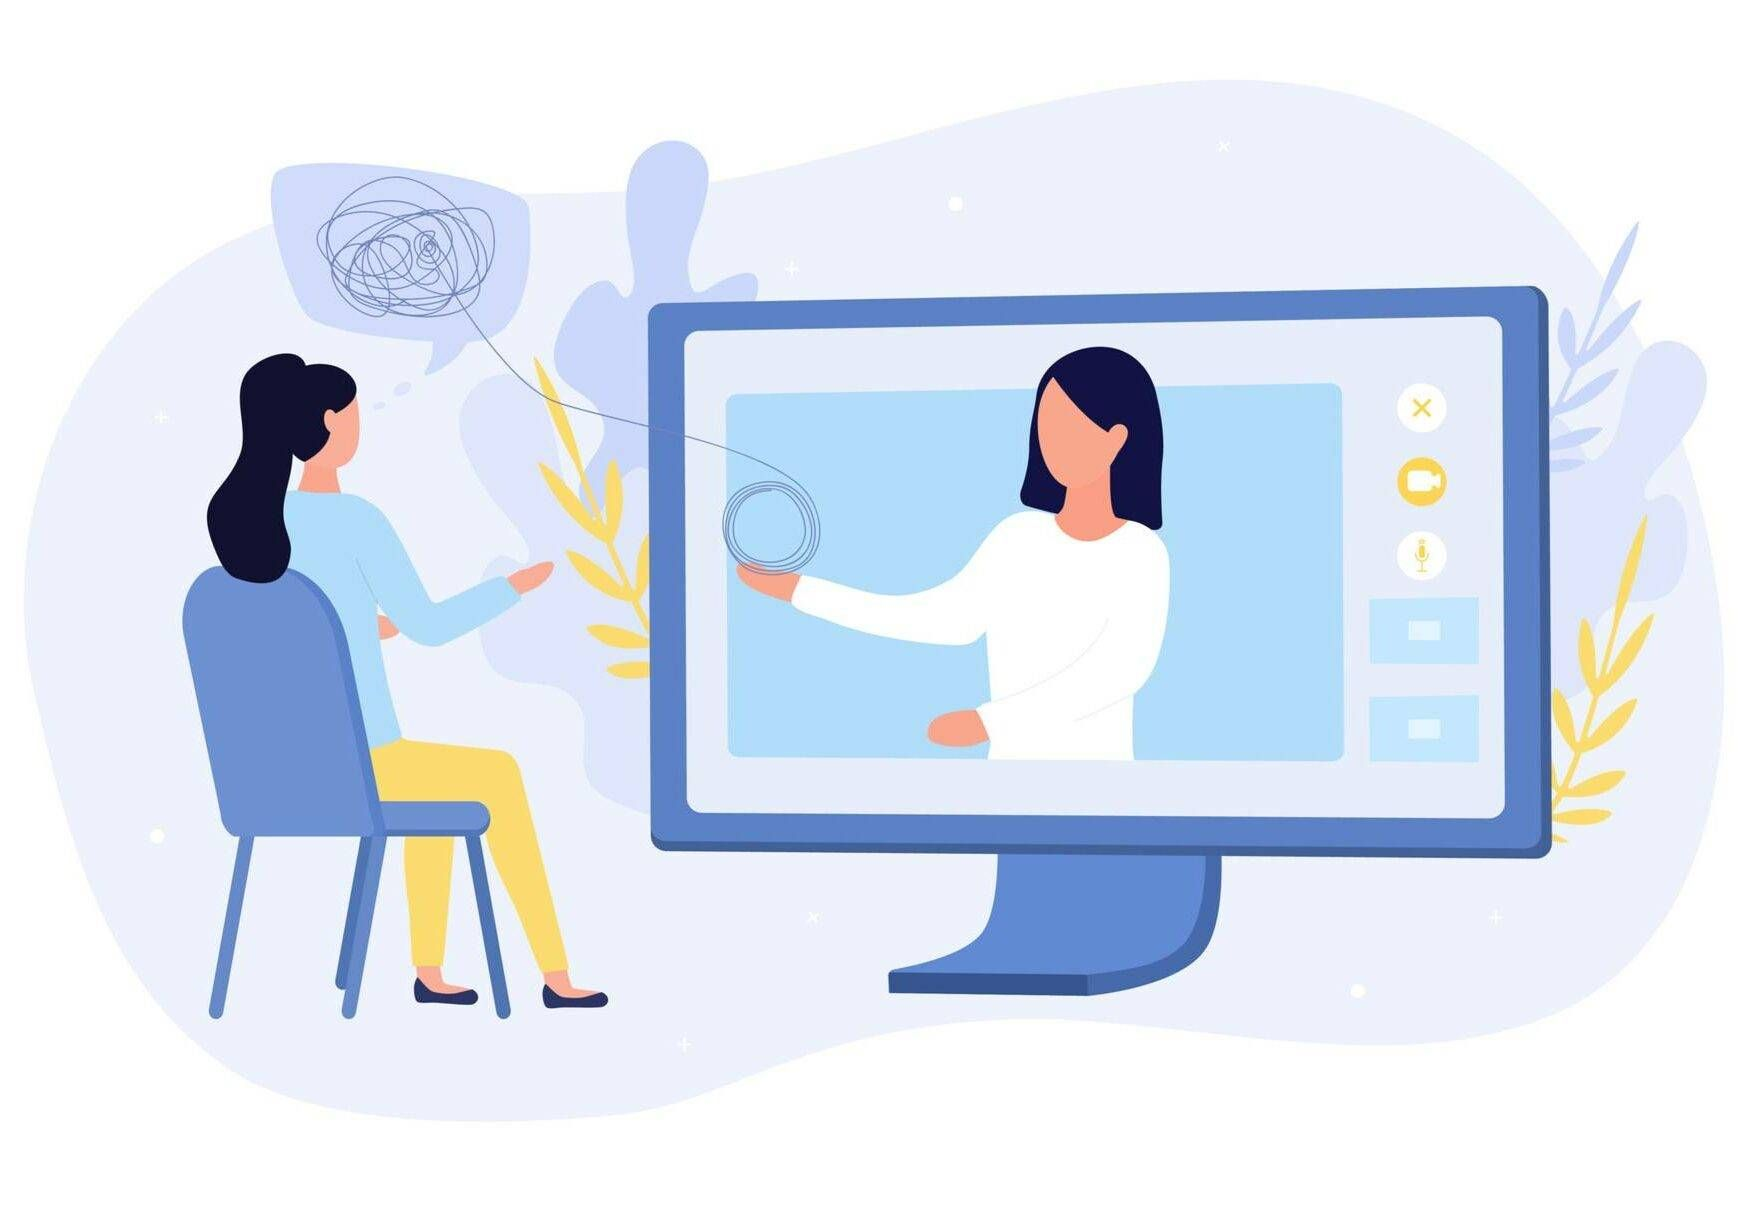 Online medical or psychological counselling with a woman sitting in front of a computer talking to a virtual doctor, colored vector illustration, asian american mental health, rewire